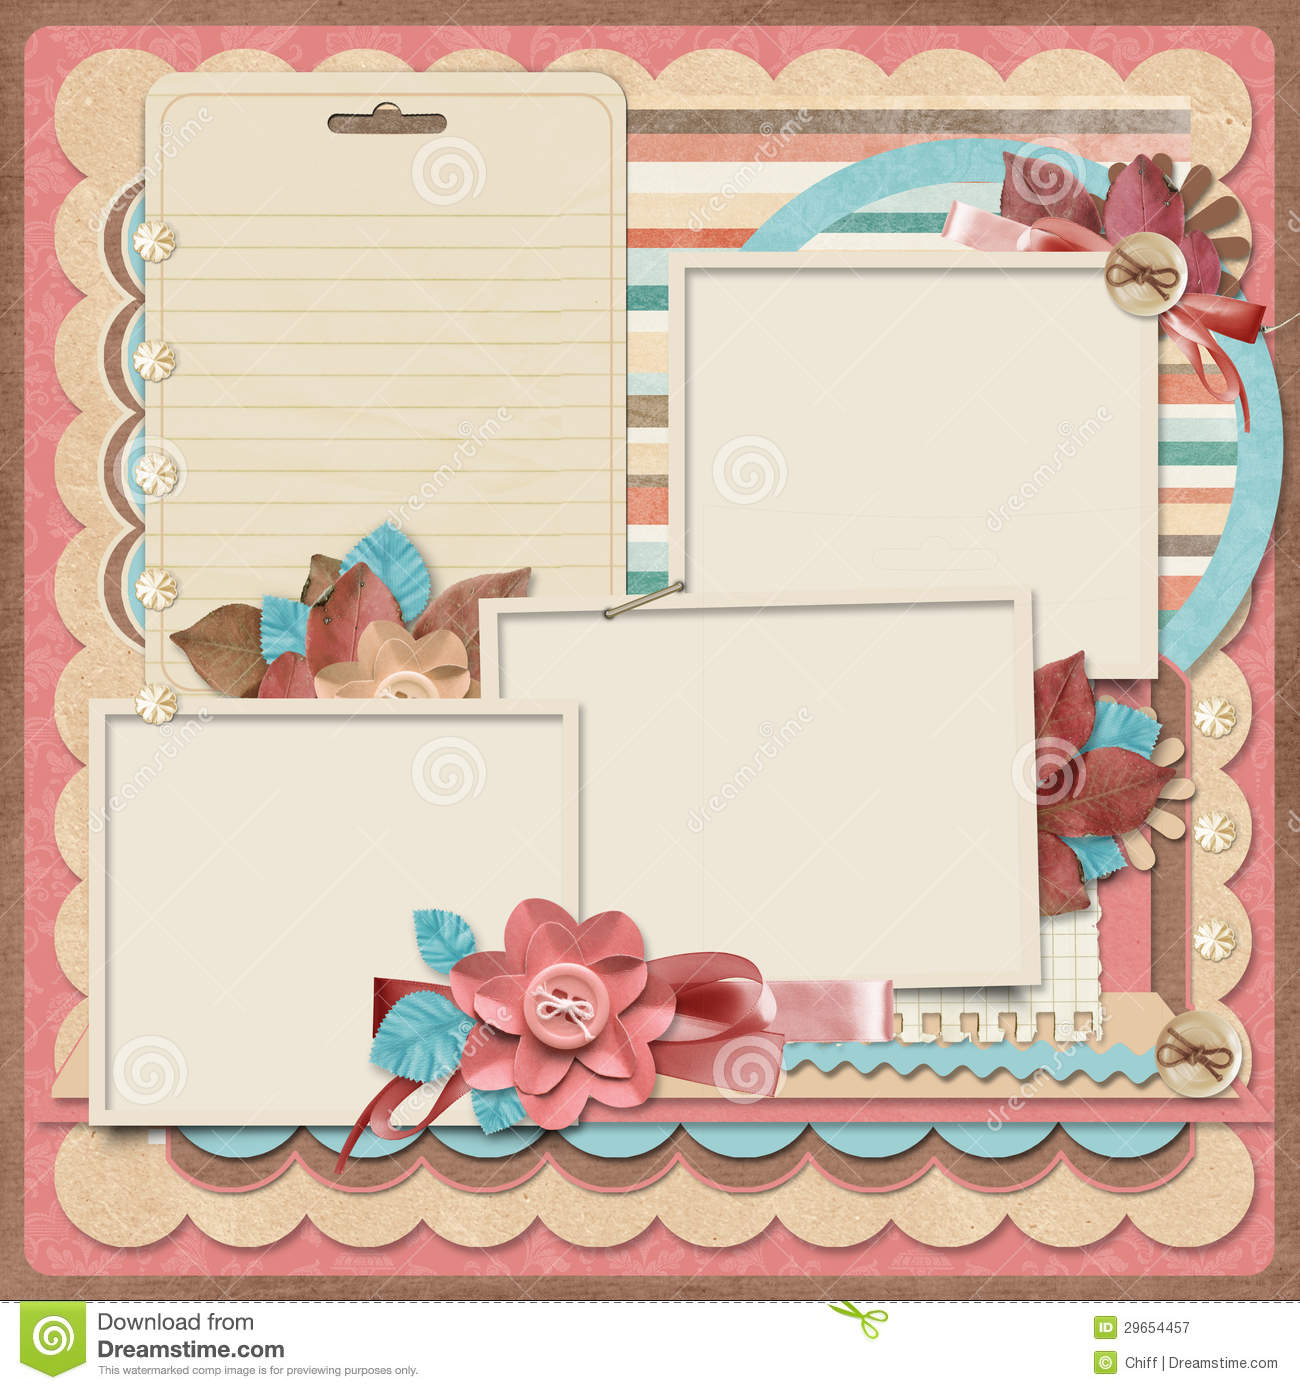 Retro Family Album365 Project Scrapbooking Templates Royalty – Photo Album Templates Free